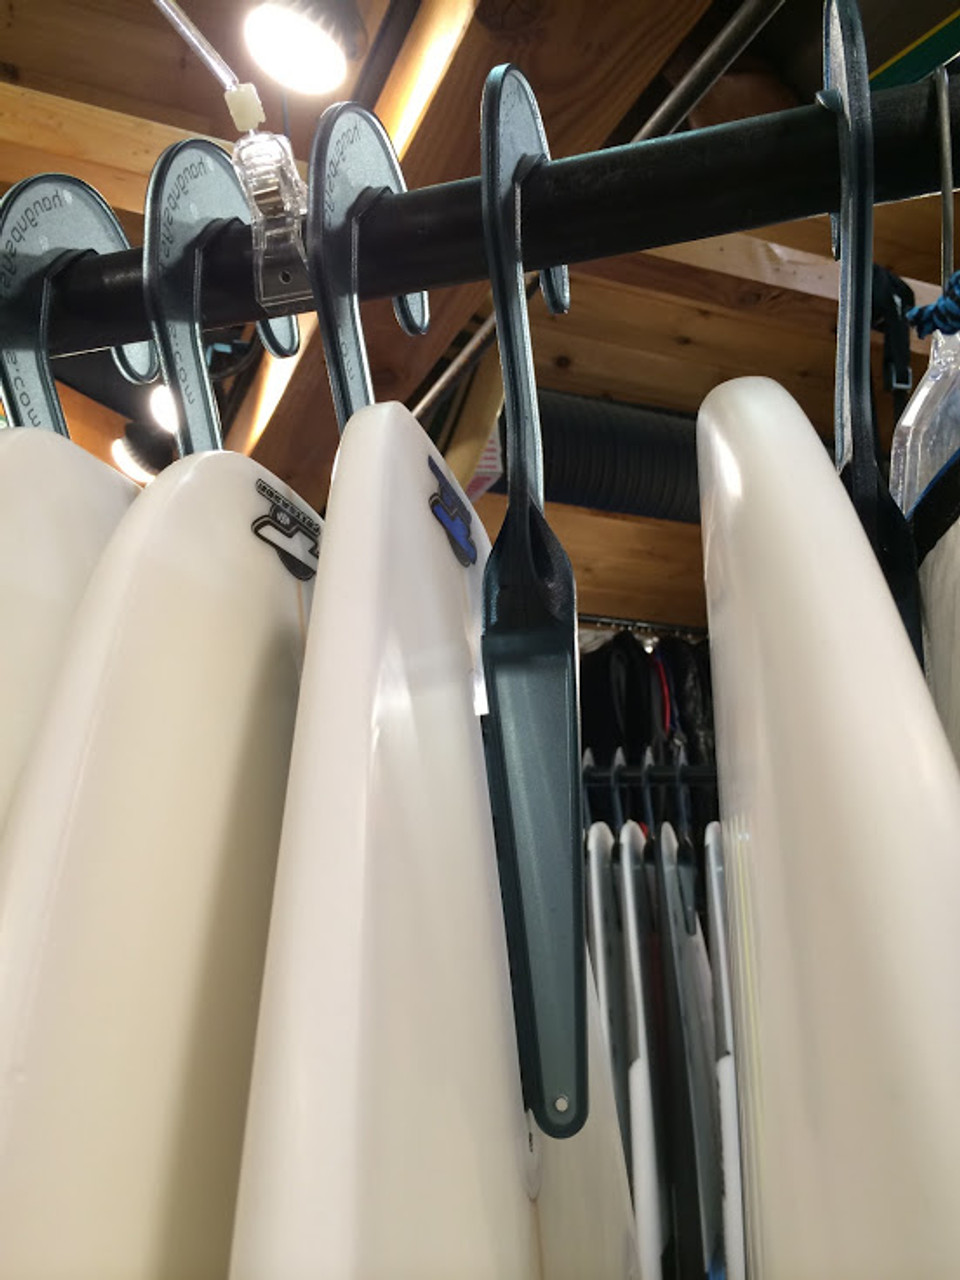 Surfboard Hanger Retail Shop Storage And Display Rack